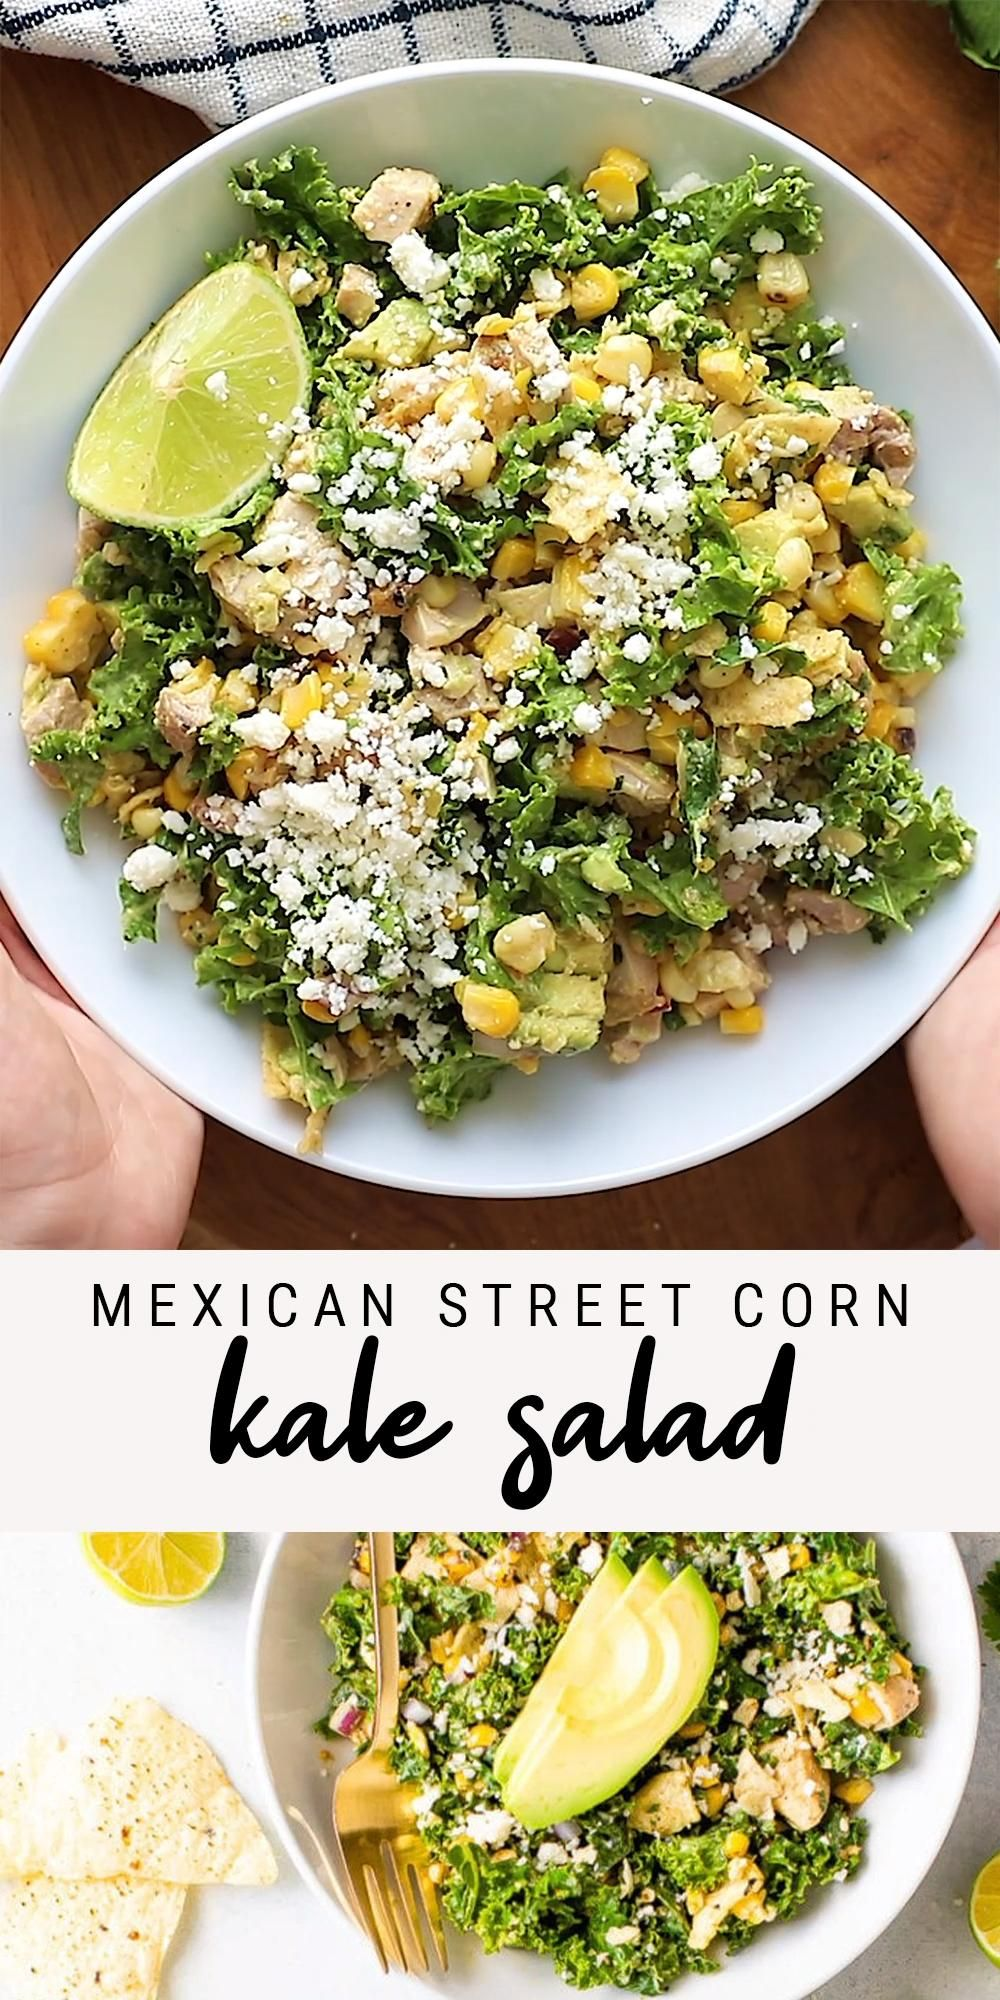 Mexican Street Corn Kale Salad with Grilled Chicke